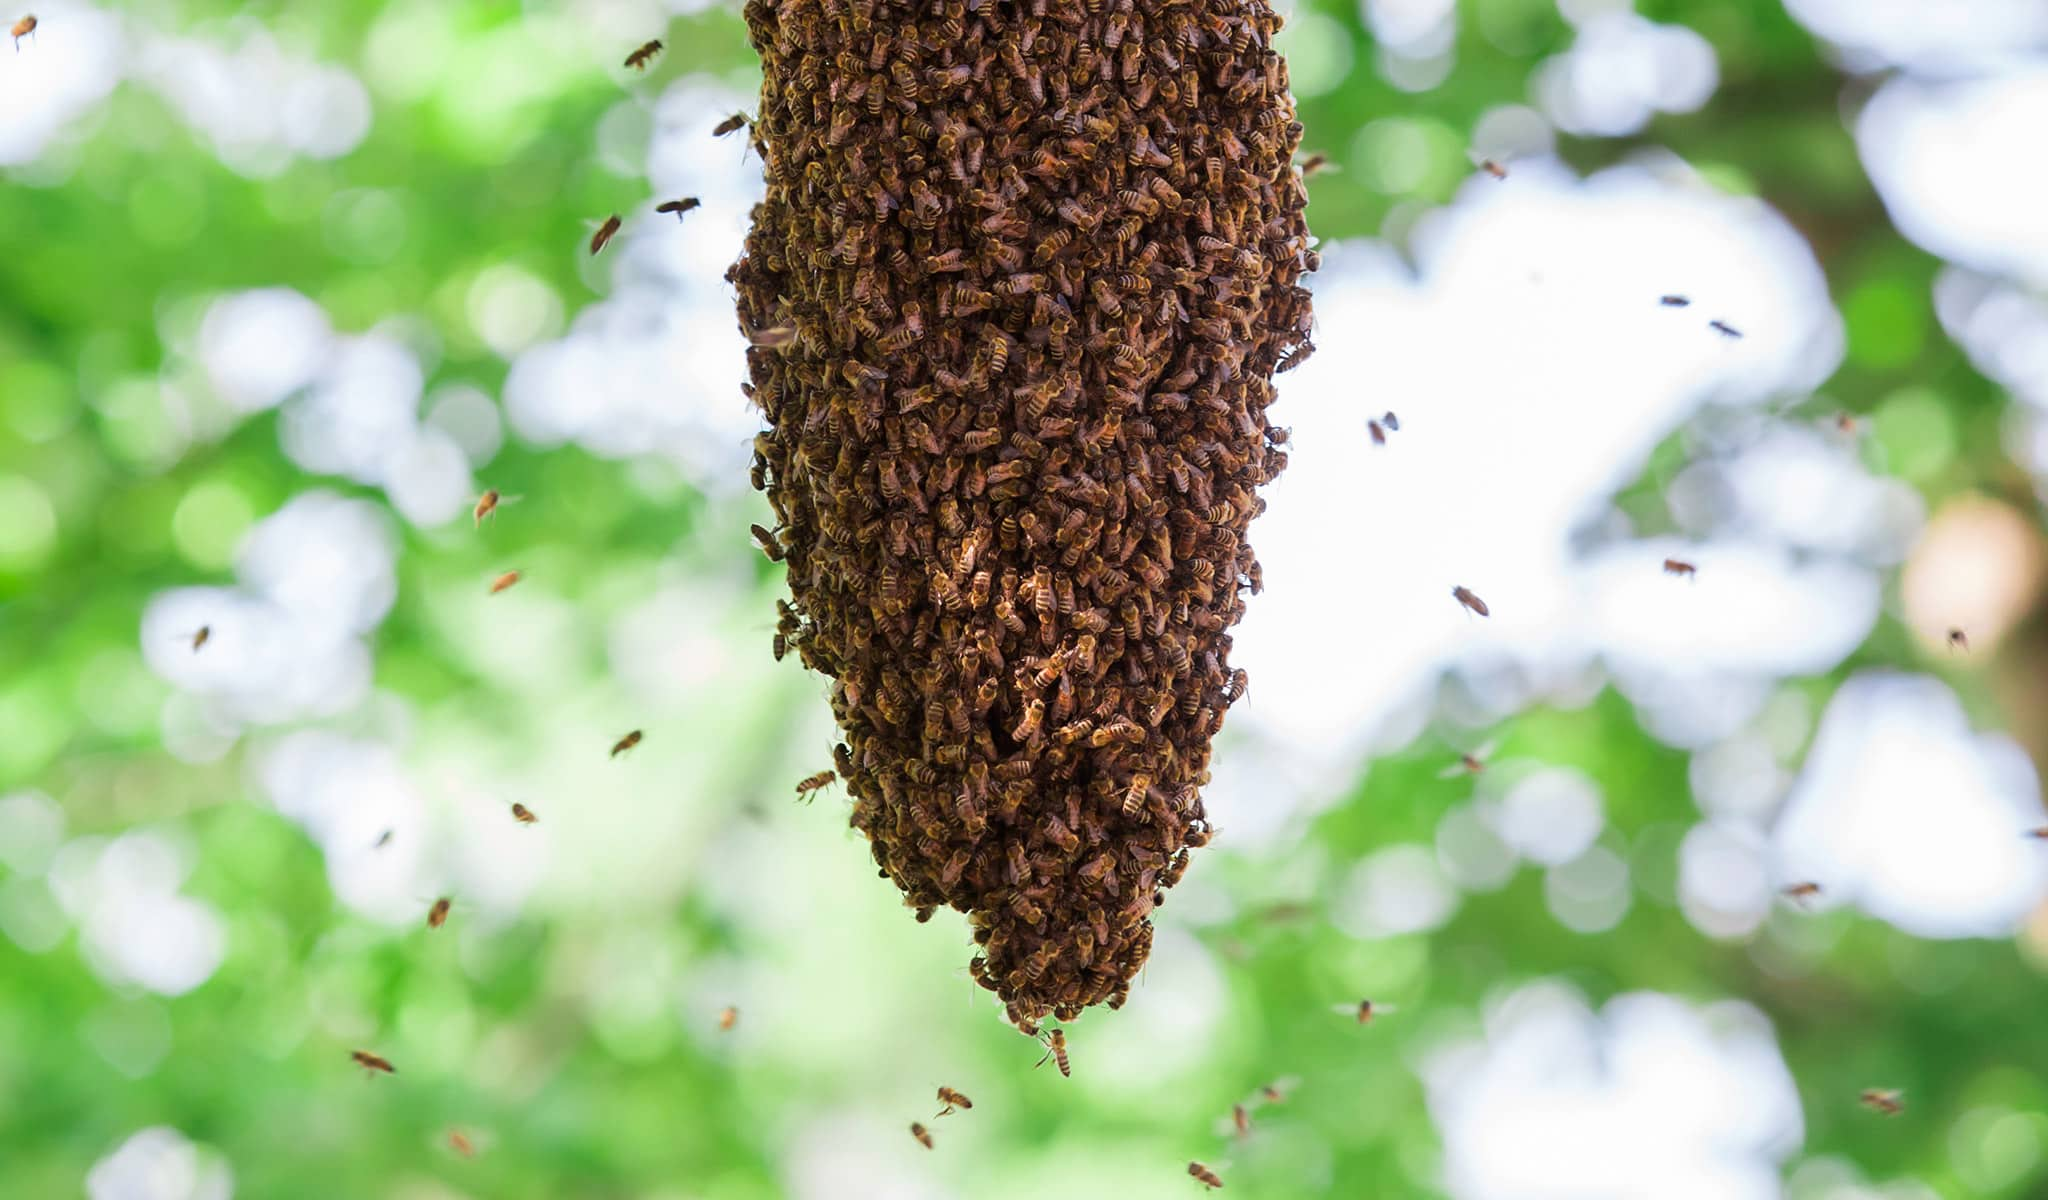 Bees swarming around a hive